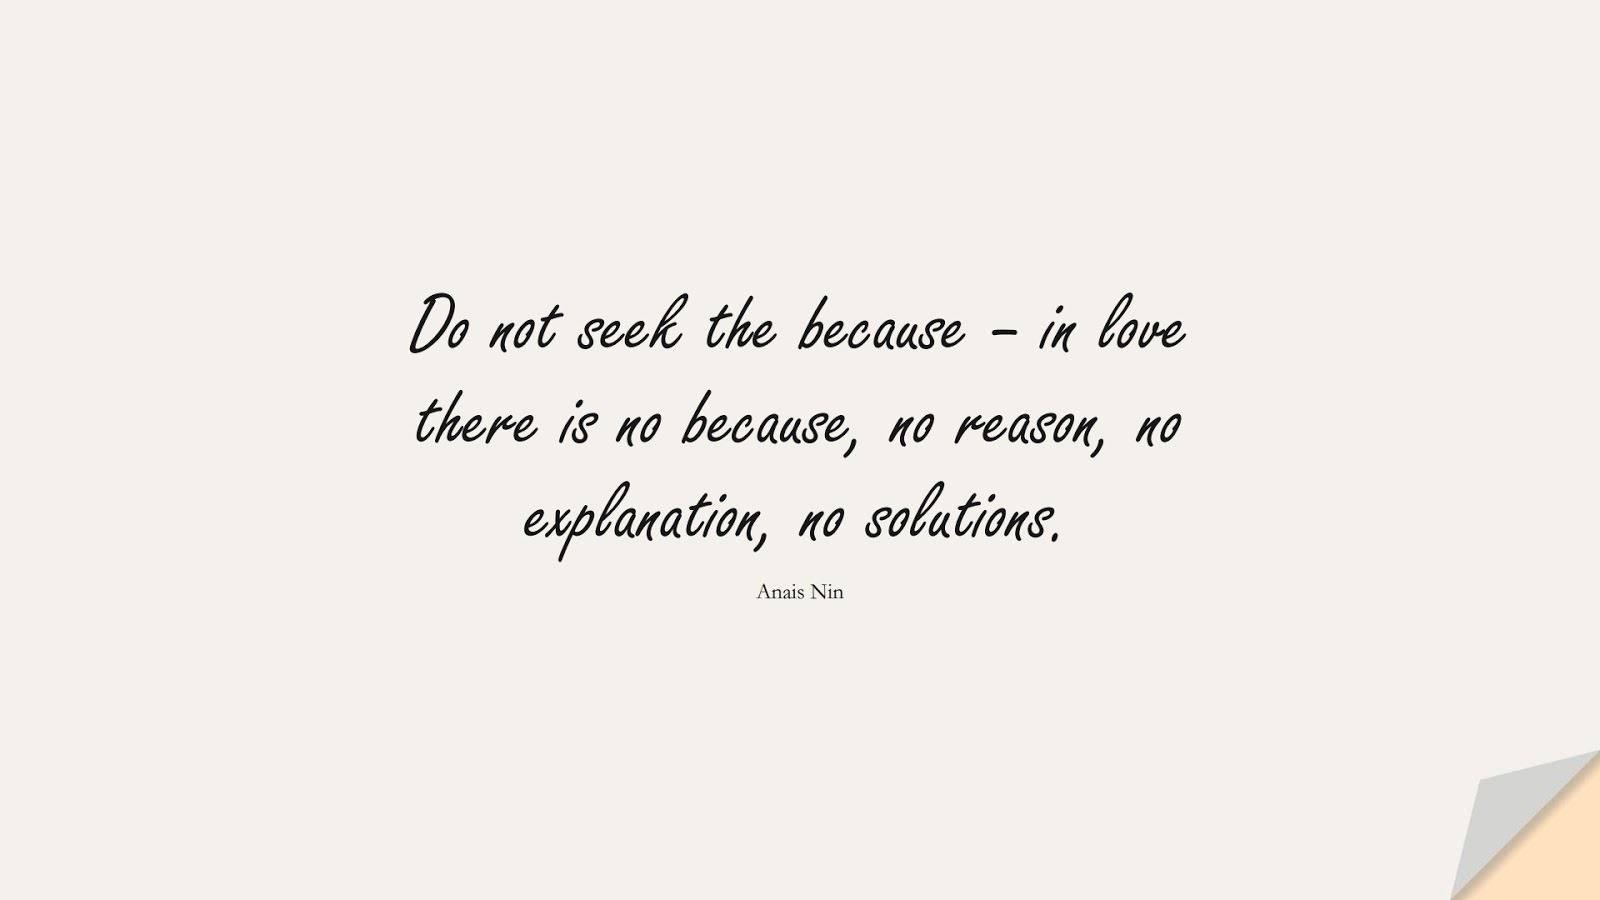 Do not seek the because – in love there is no because, no reason, no explanation, no solutions. (Anais Nin);  #ShortQuotes